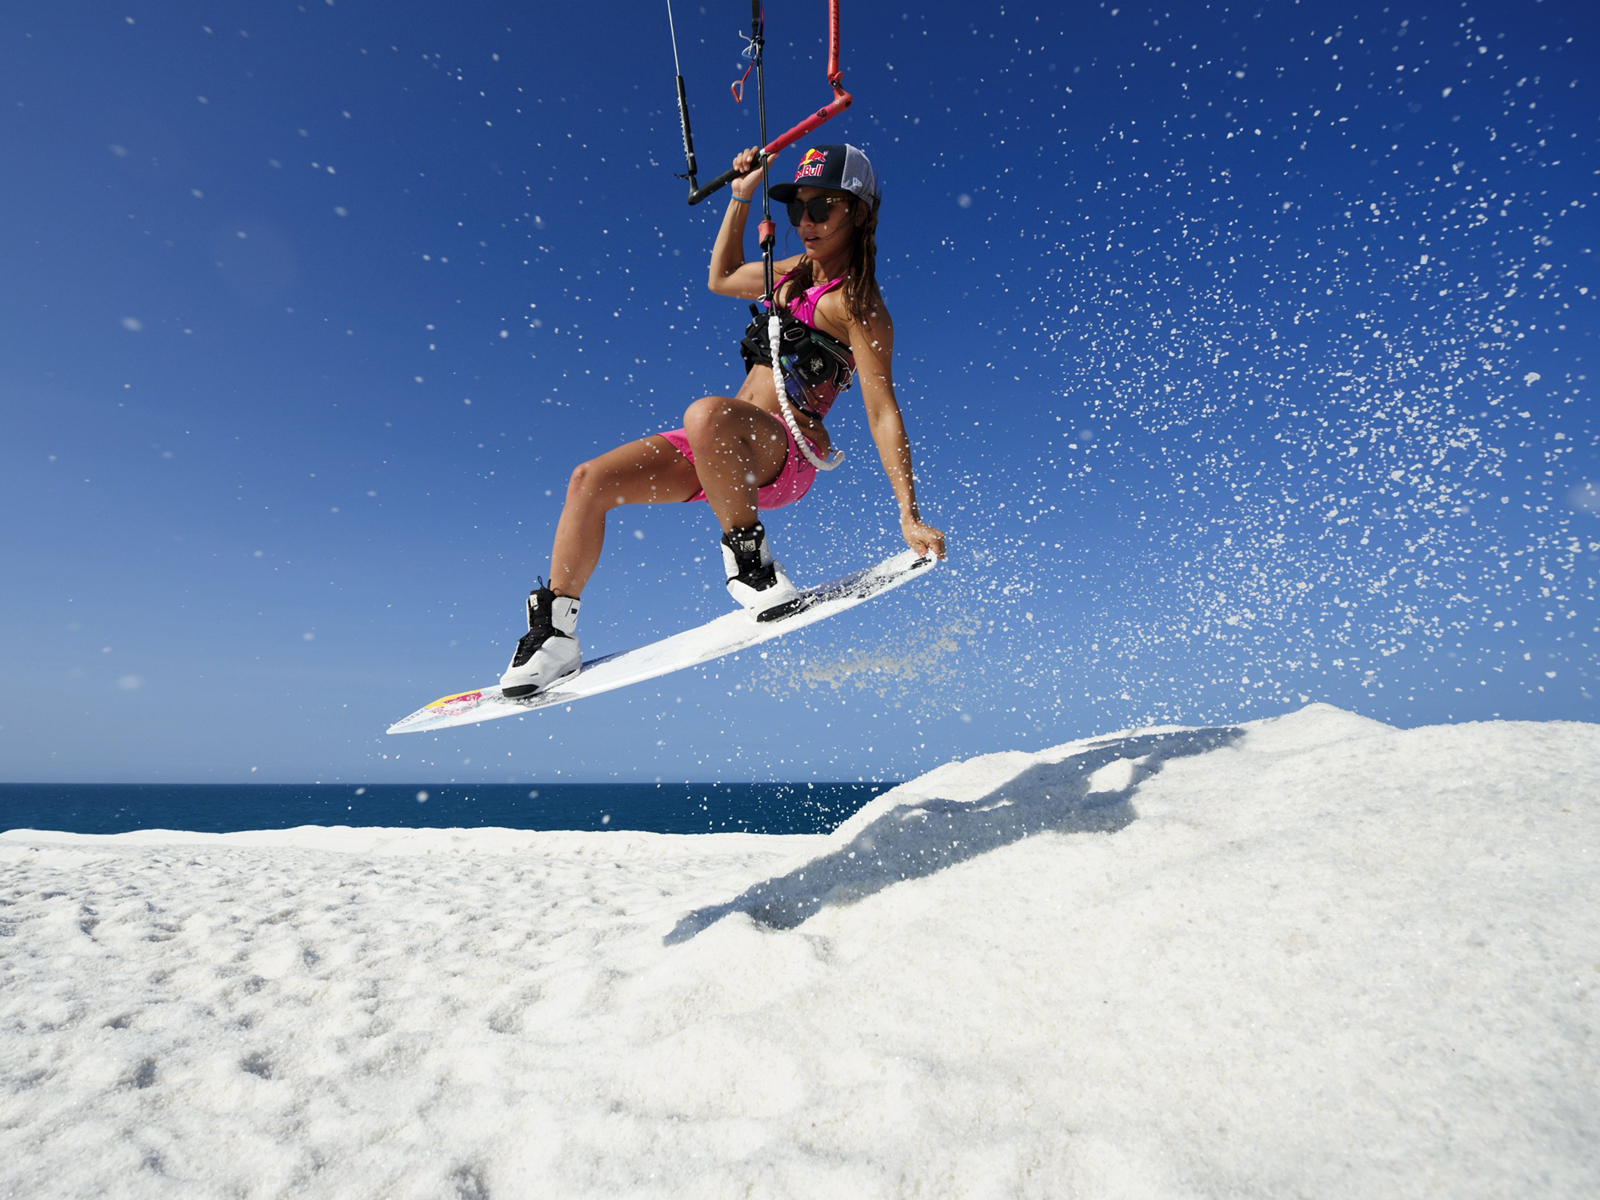 kitesurf wallpaper image - Bruna Kajiya jumping from salt mountain - in resolution: Standard 4:3 1600 X 1200